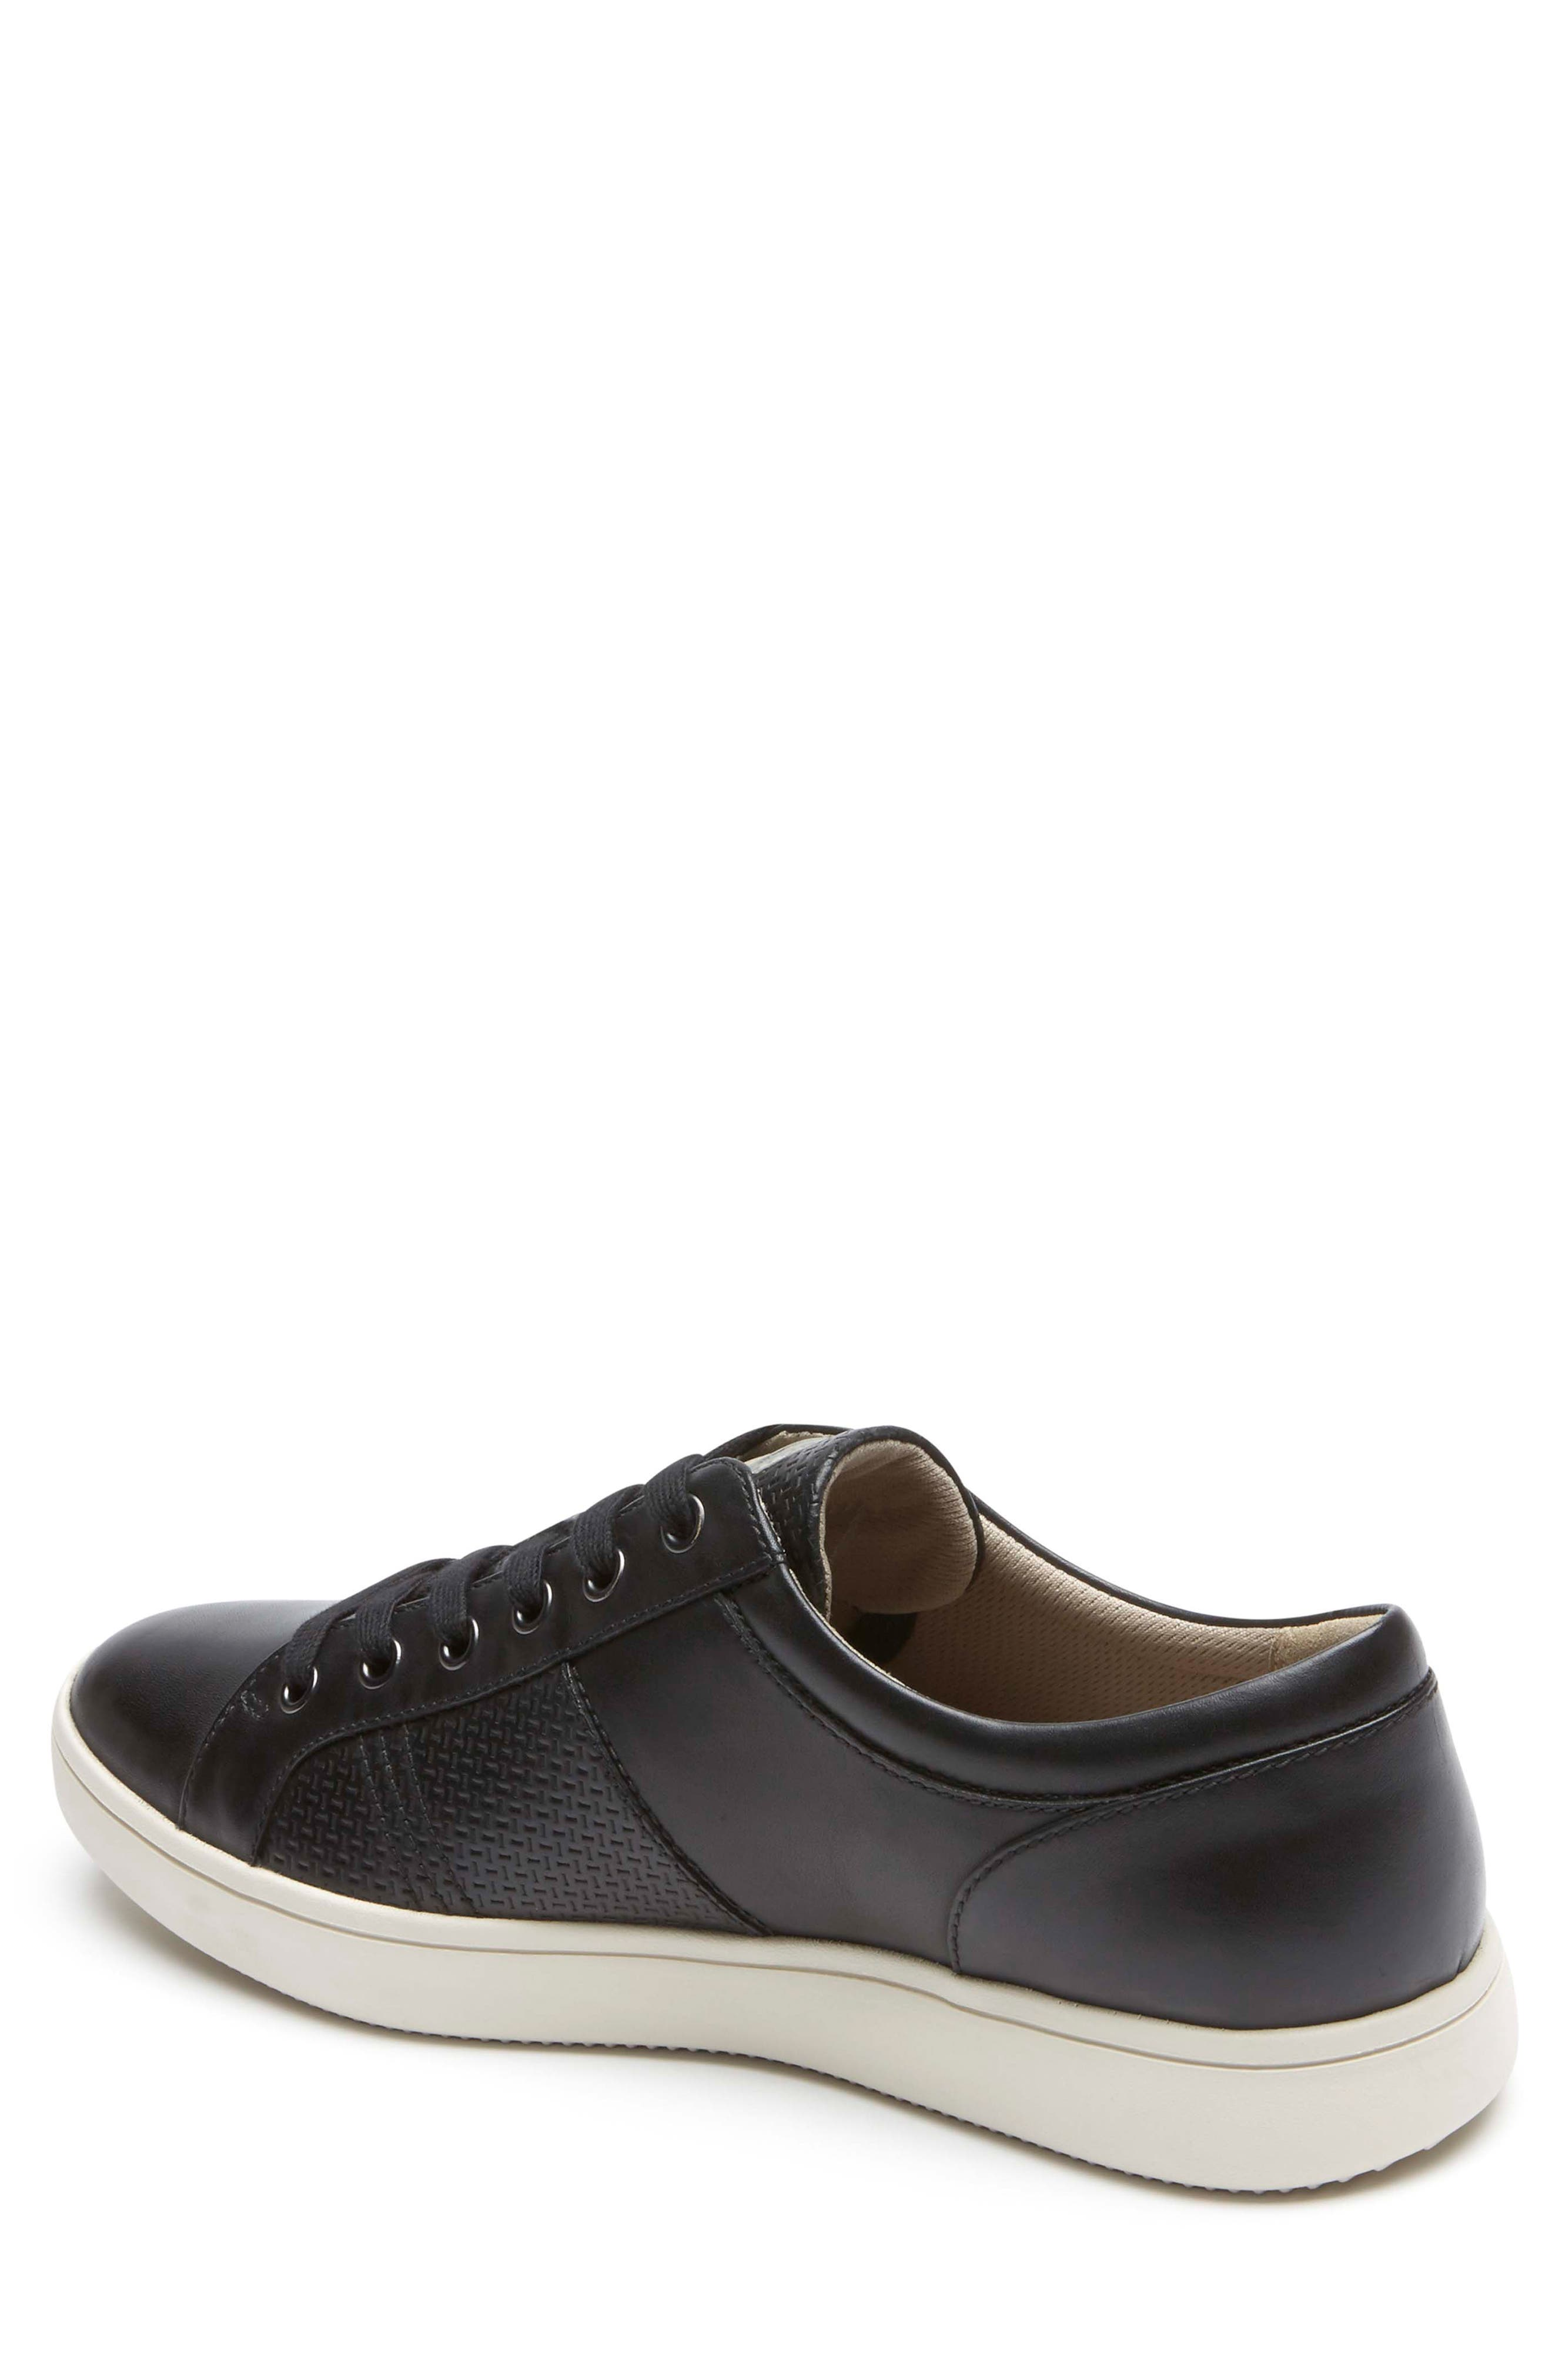 City Lites Collection Lace-Up Sneaker,                             Alternate thumbnail 2, color,                             001